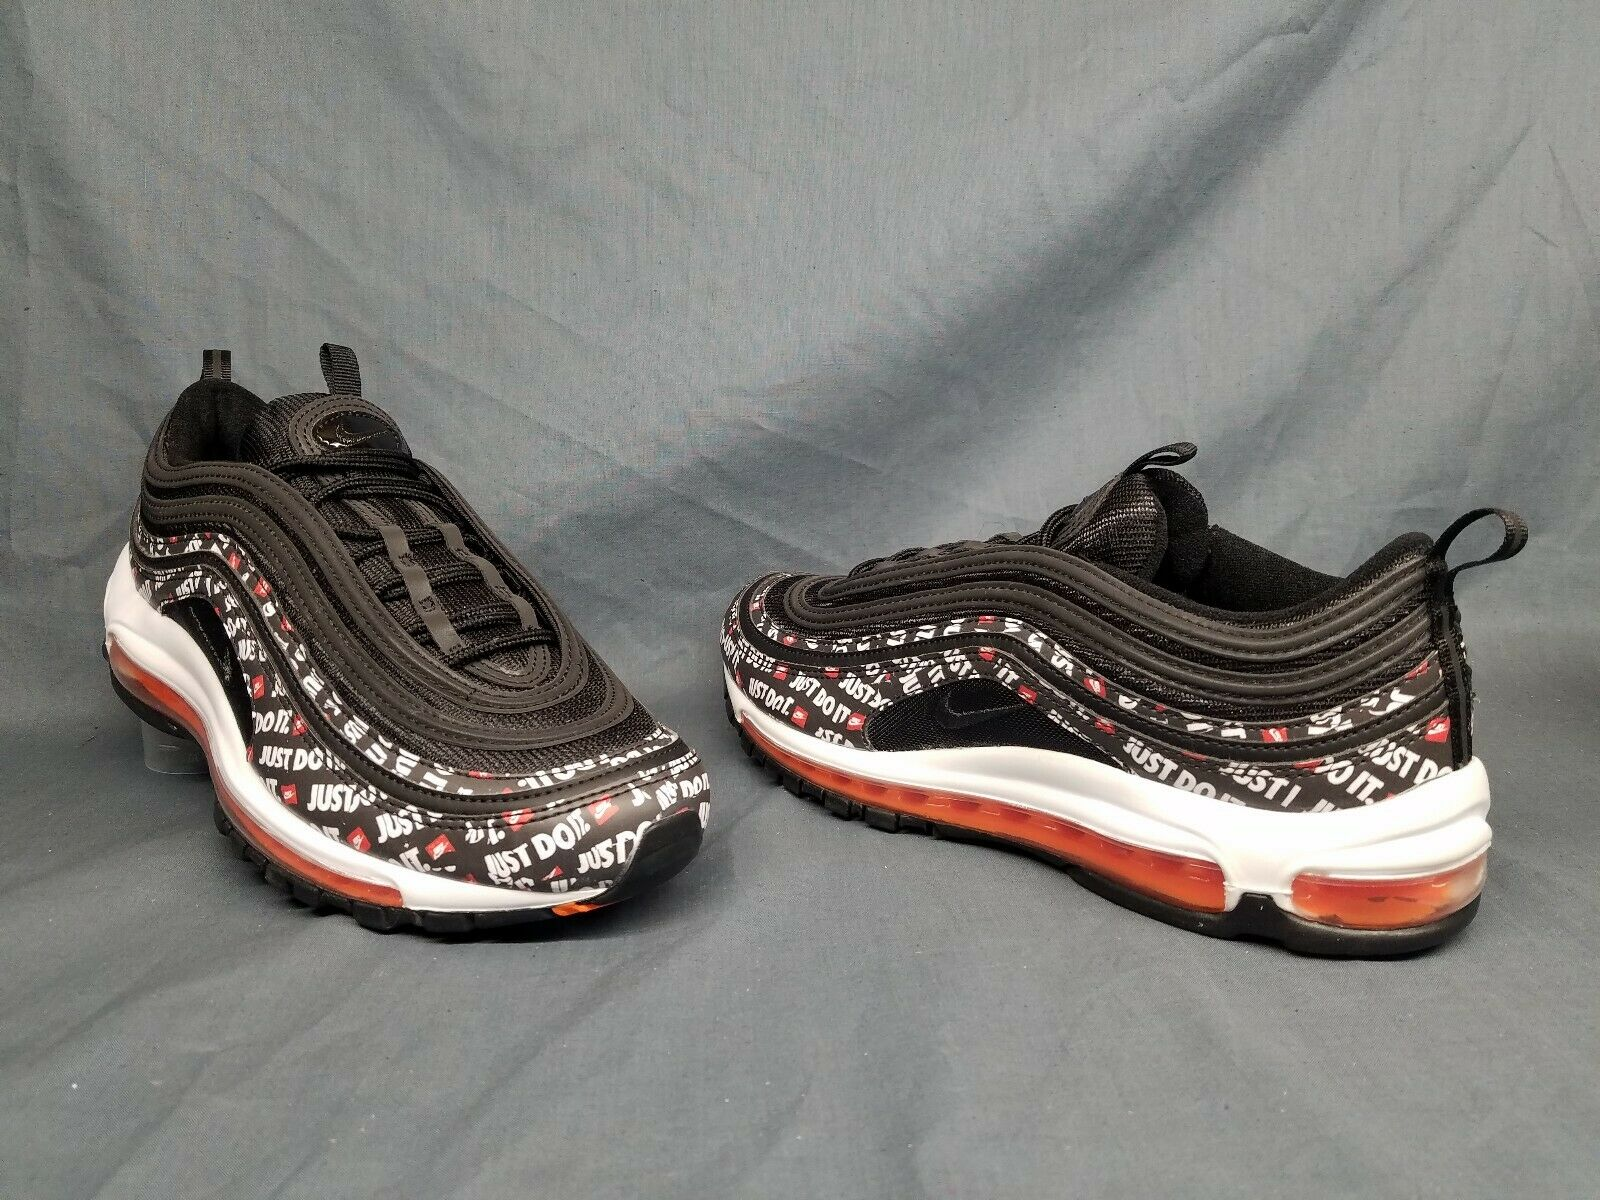 Nike Men's Air Air Air Max 97 Running Sneakers Just Do It Black Size 9 FLOOR MODEL  c7e2b0